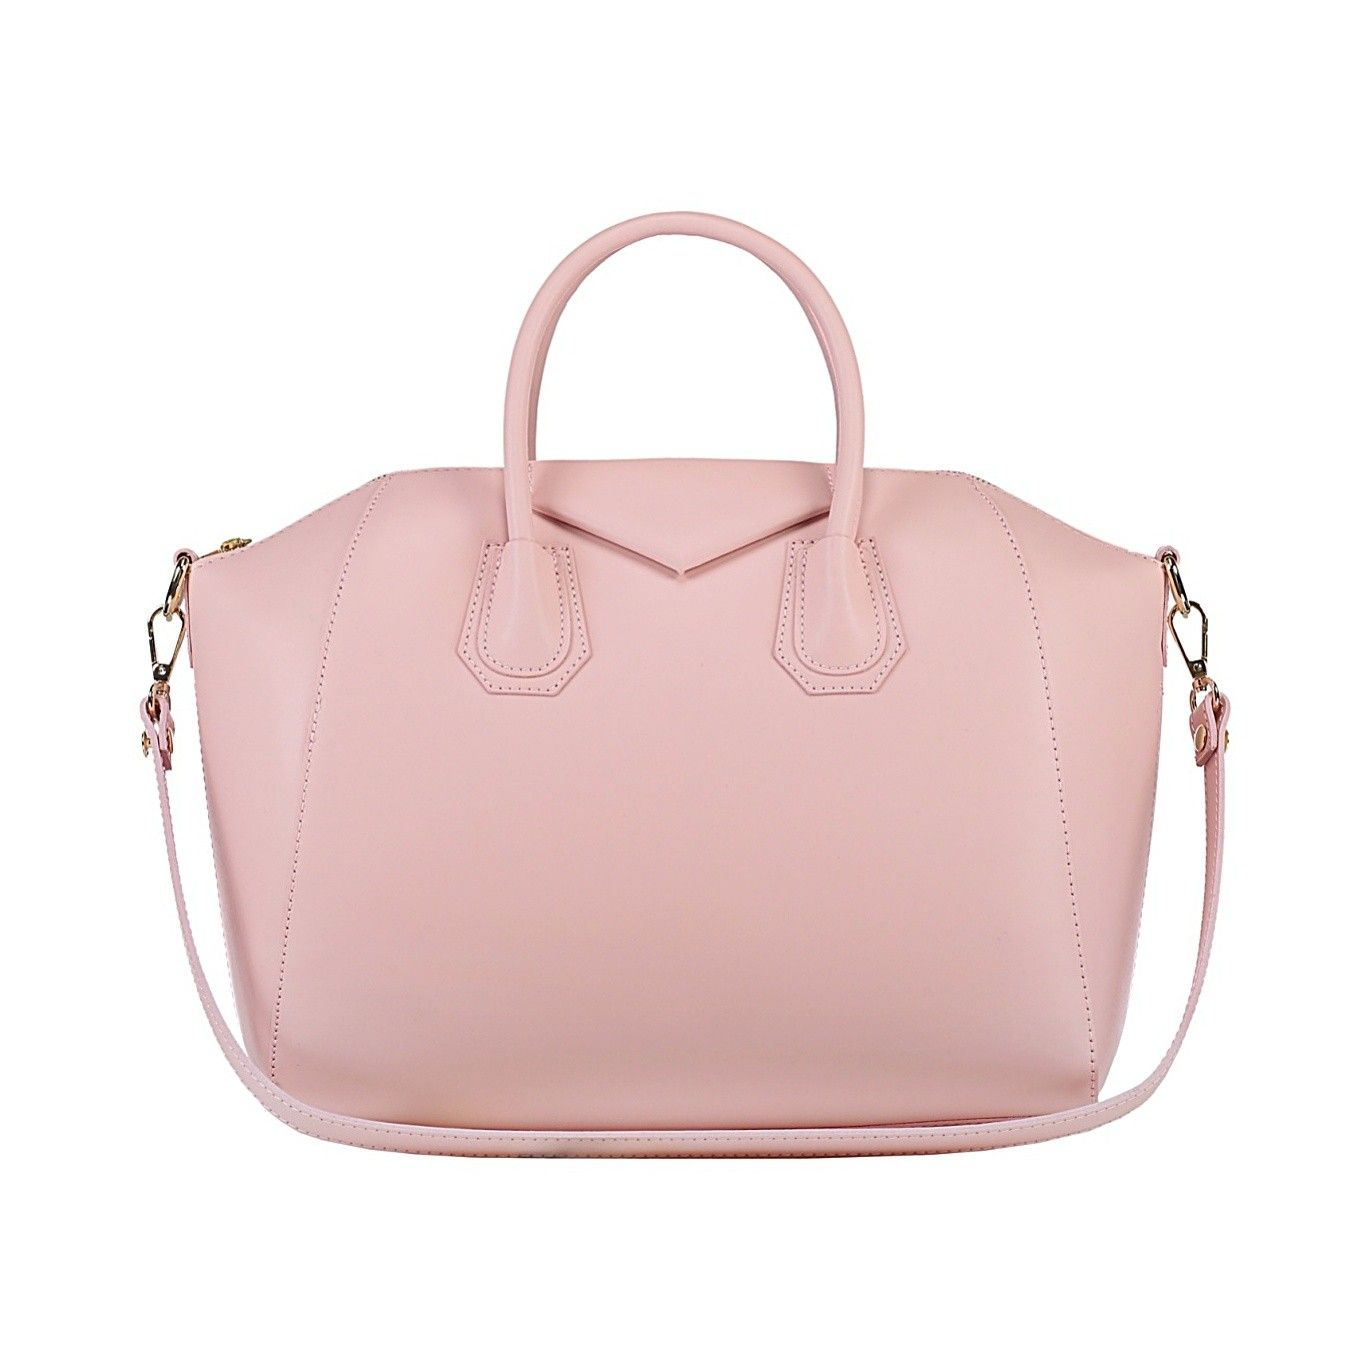 "Pretty blush pink bag. Obviously a bit ""inspired"" by a certain Givenchy bag. This is my bag for spring. It's so cute and fits everything I need for work!"